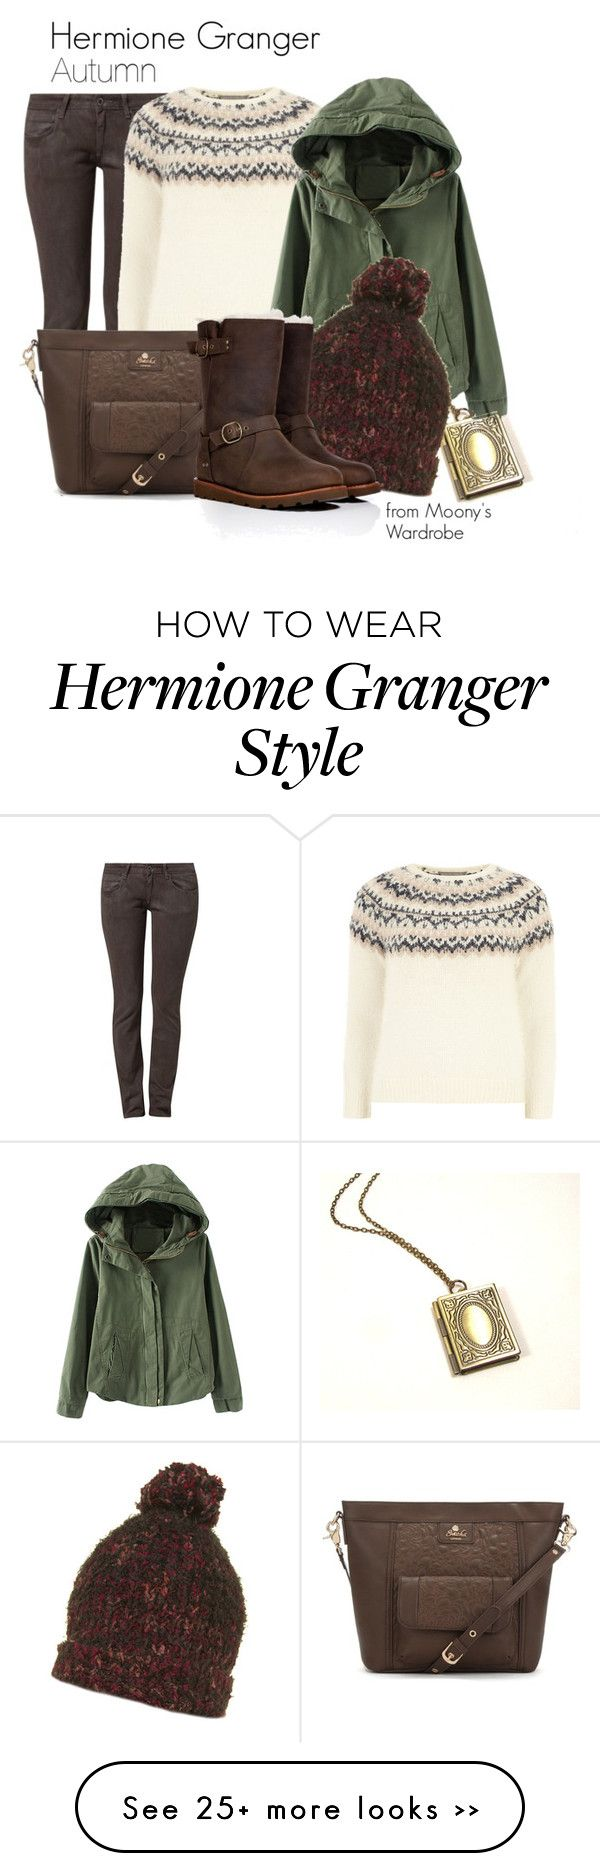 """Hermione Granger: Autumn"" by evalupin on Polyvore"